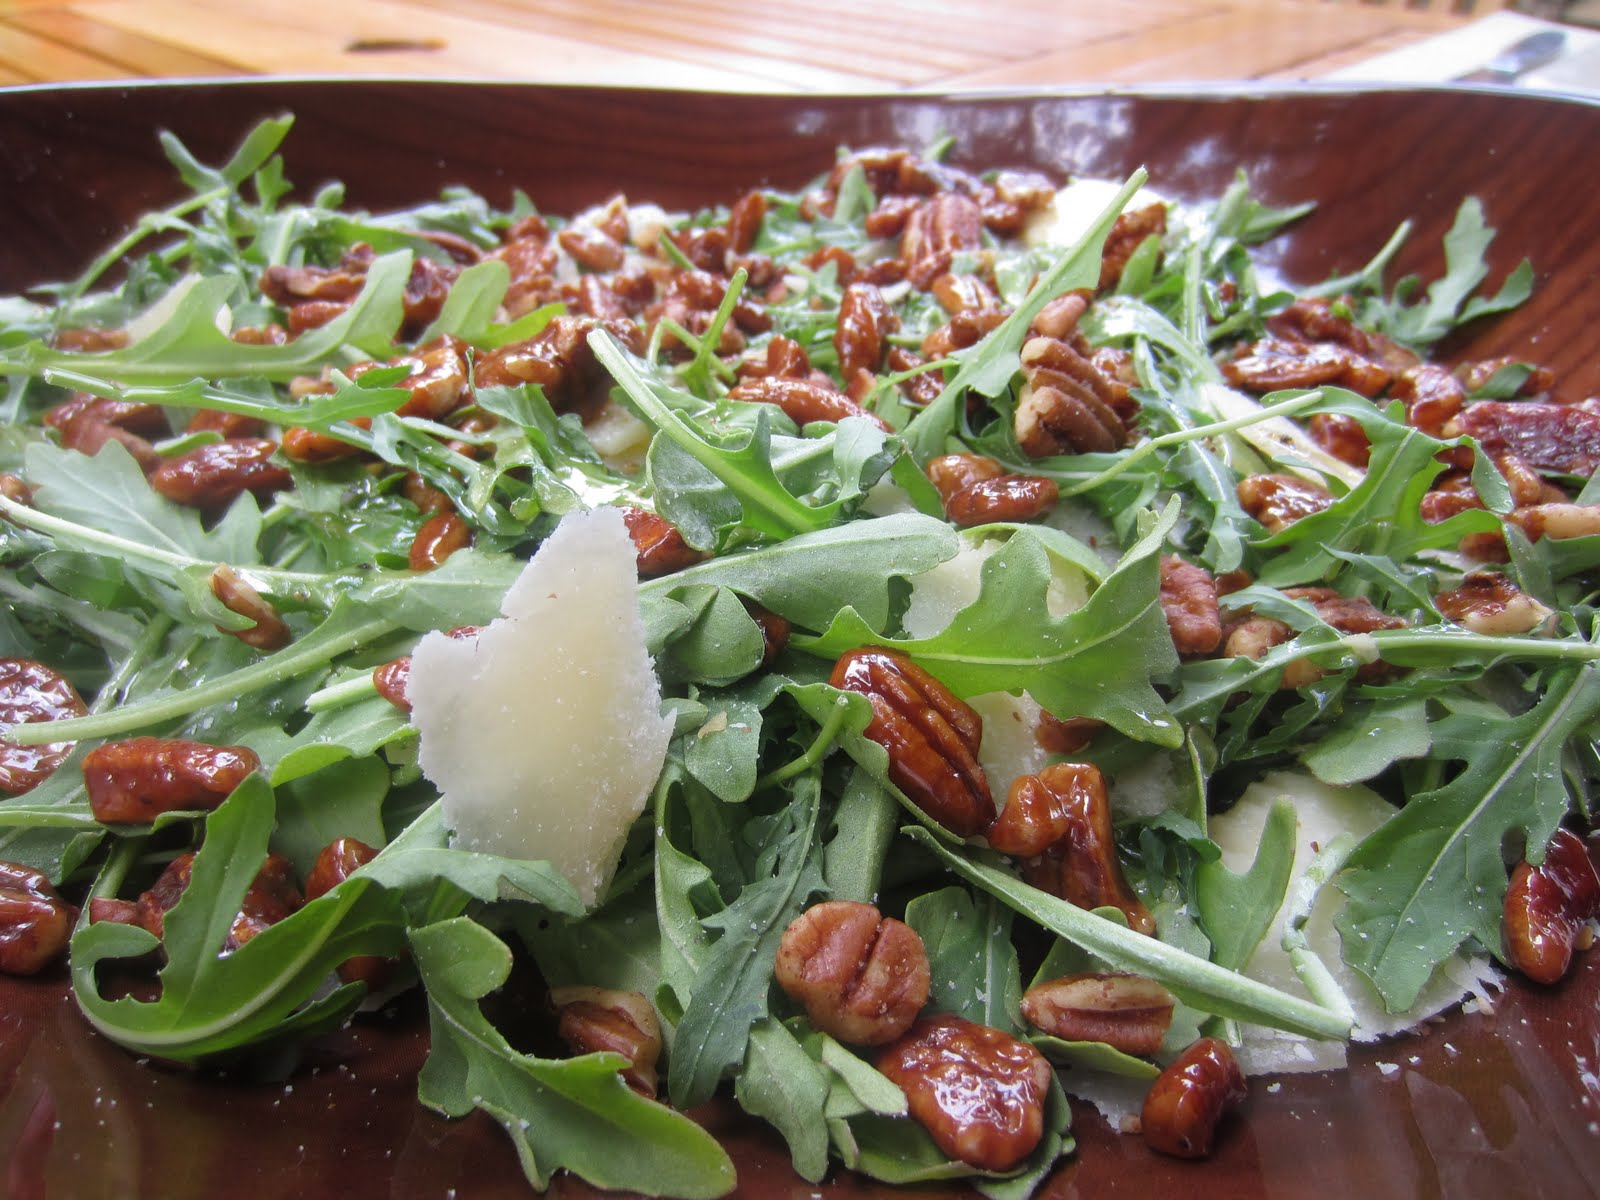 Luca: Glazed Pecans and Parmesan Arugula Salad